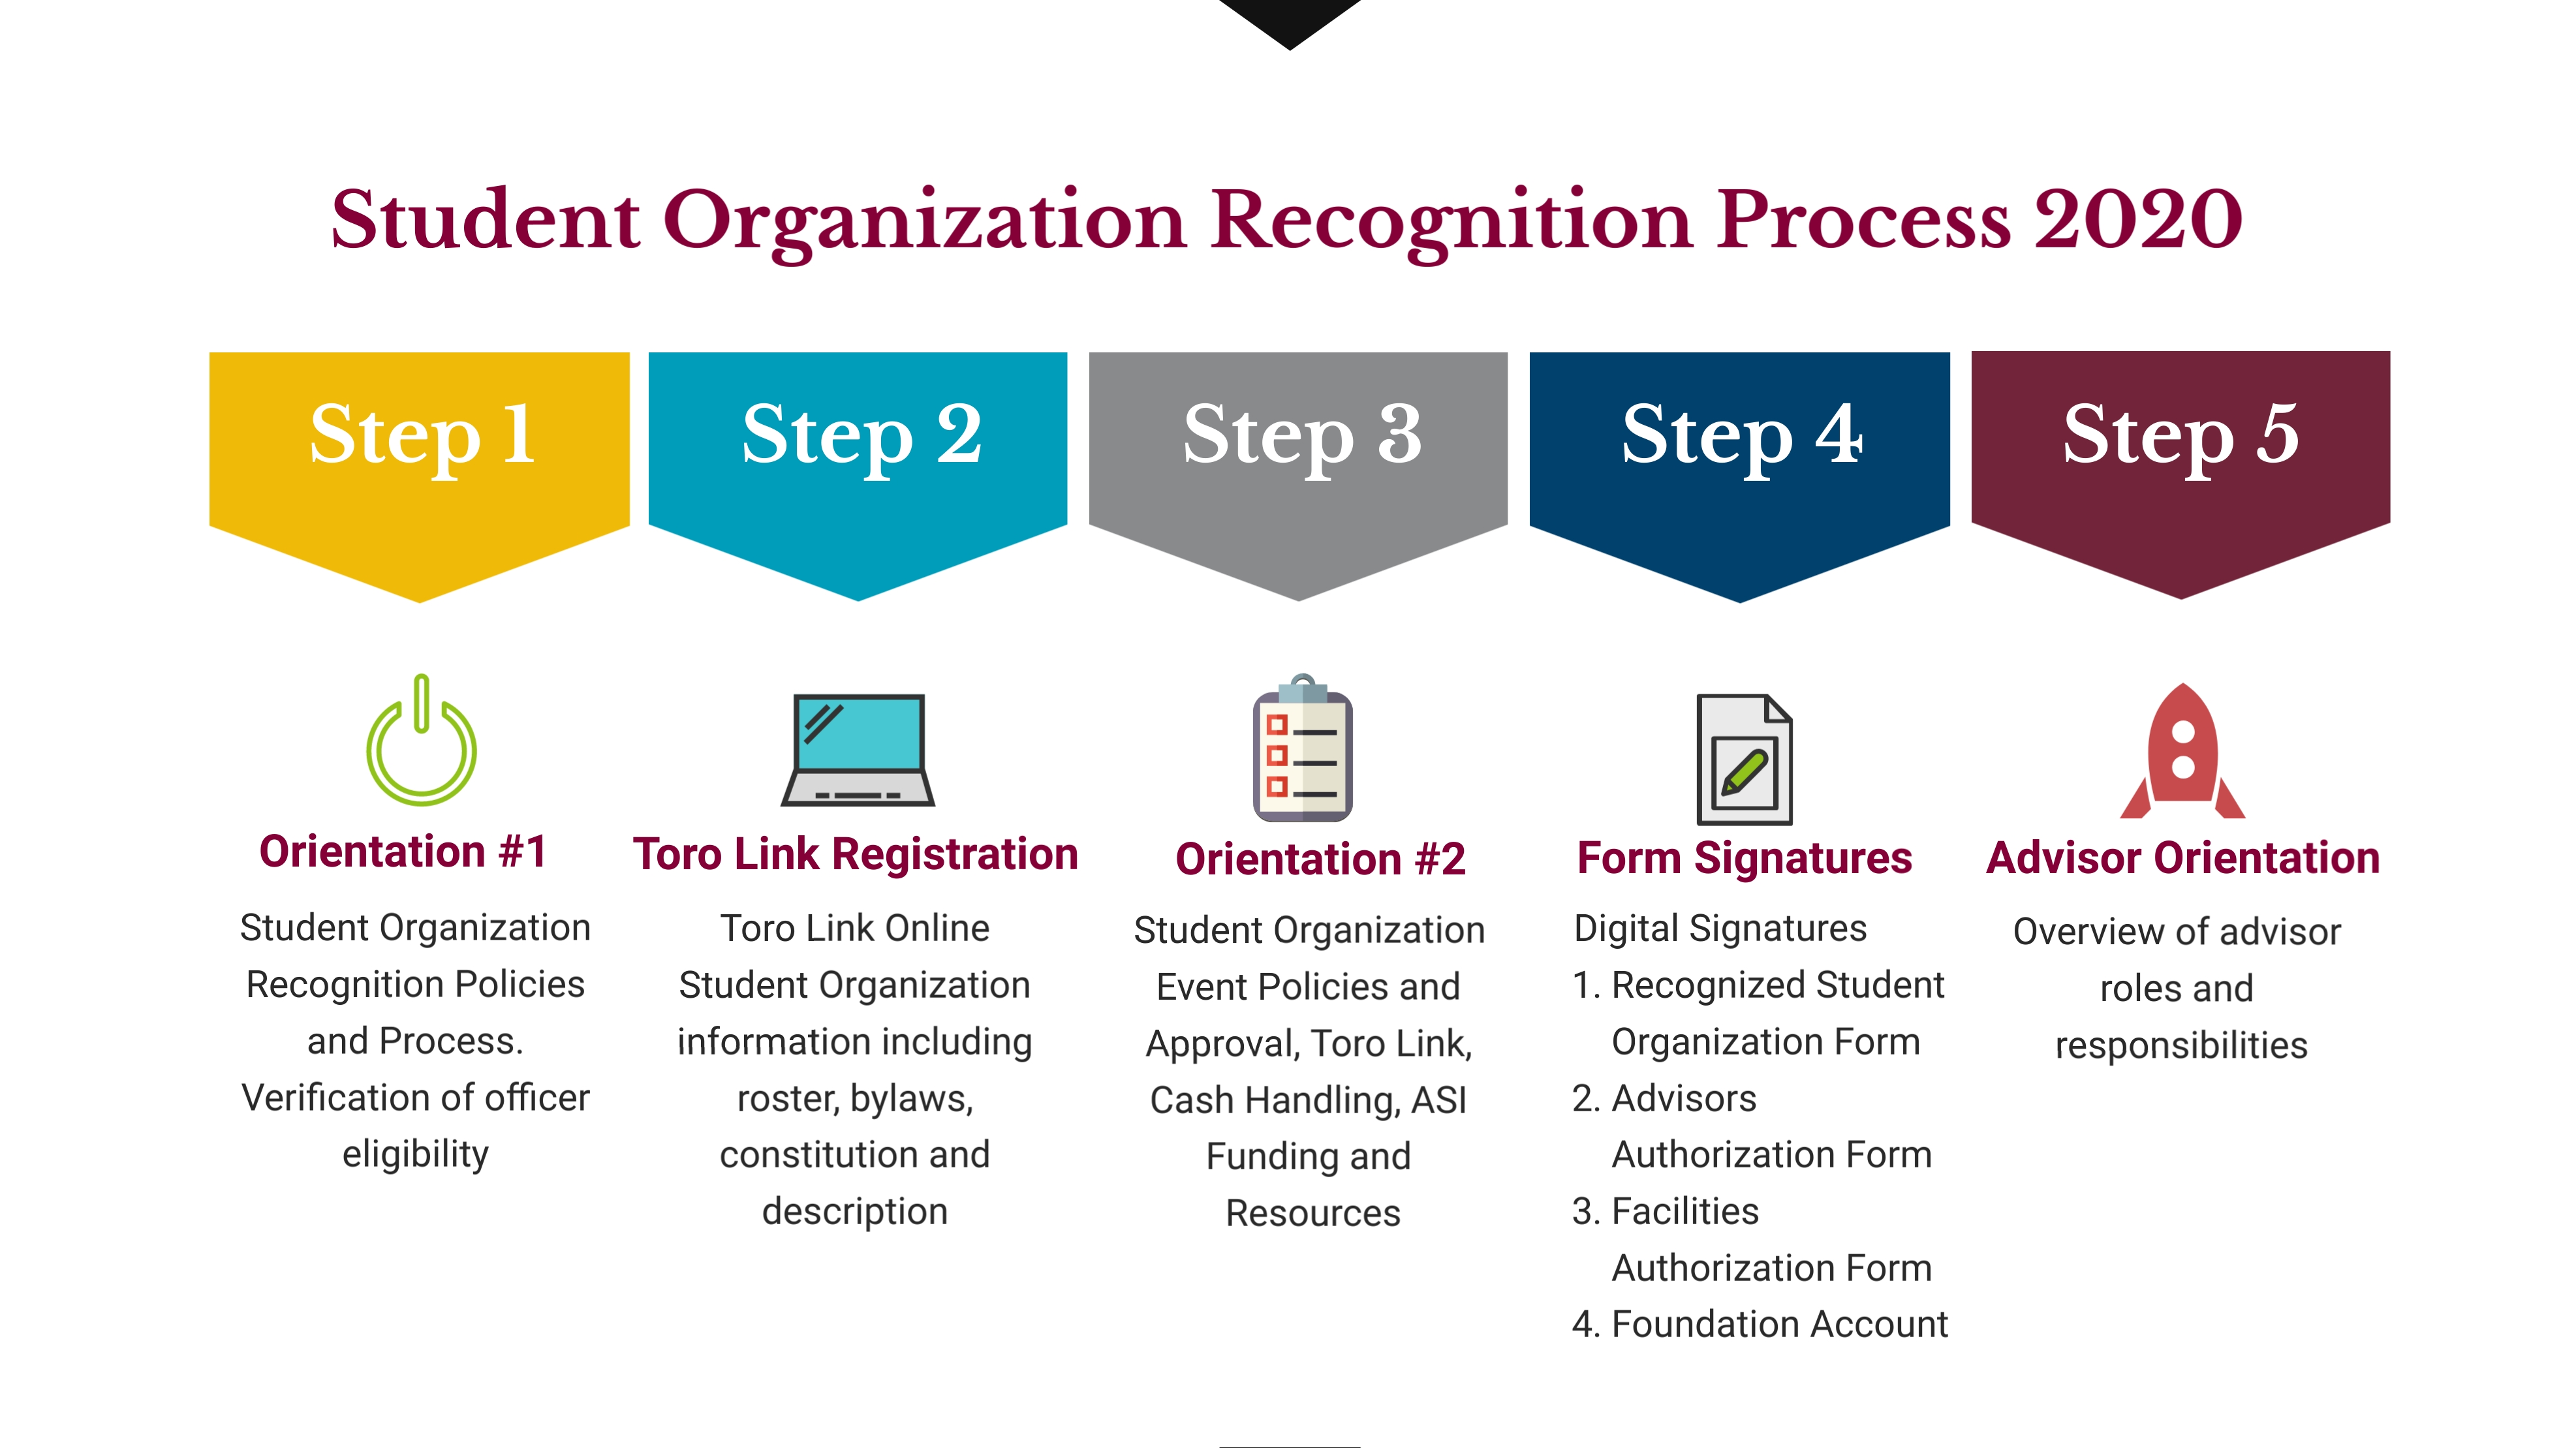 5 Steps of the Student Organization Recognition Process